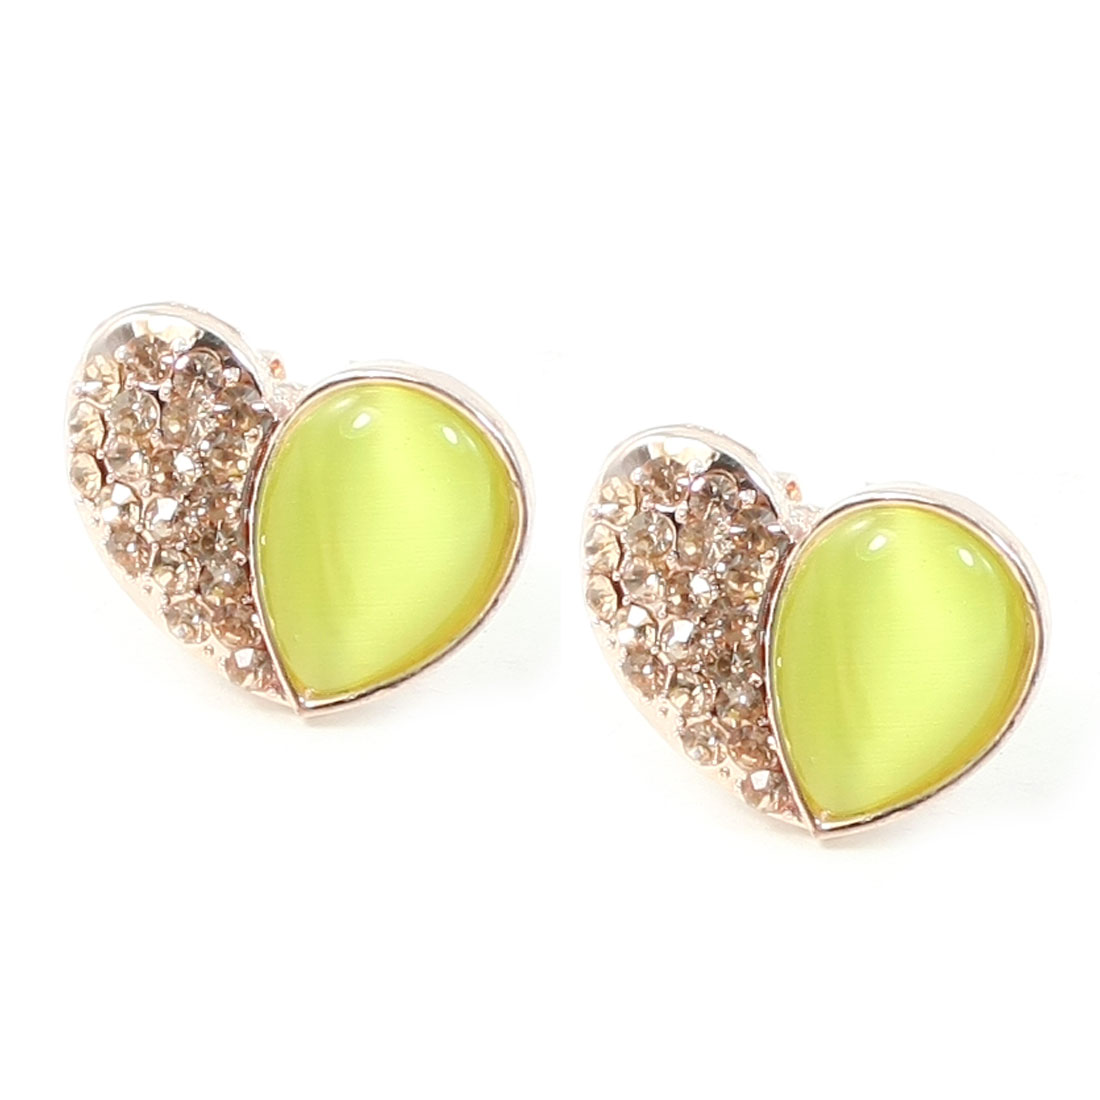 Women Green Rhinestone Inlaid Plastic Crystal Decor Heart Design Spring Hook Earrings